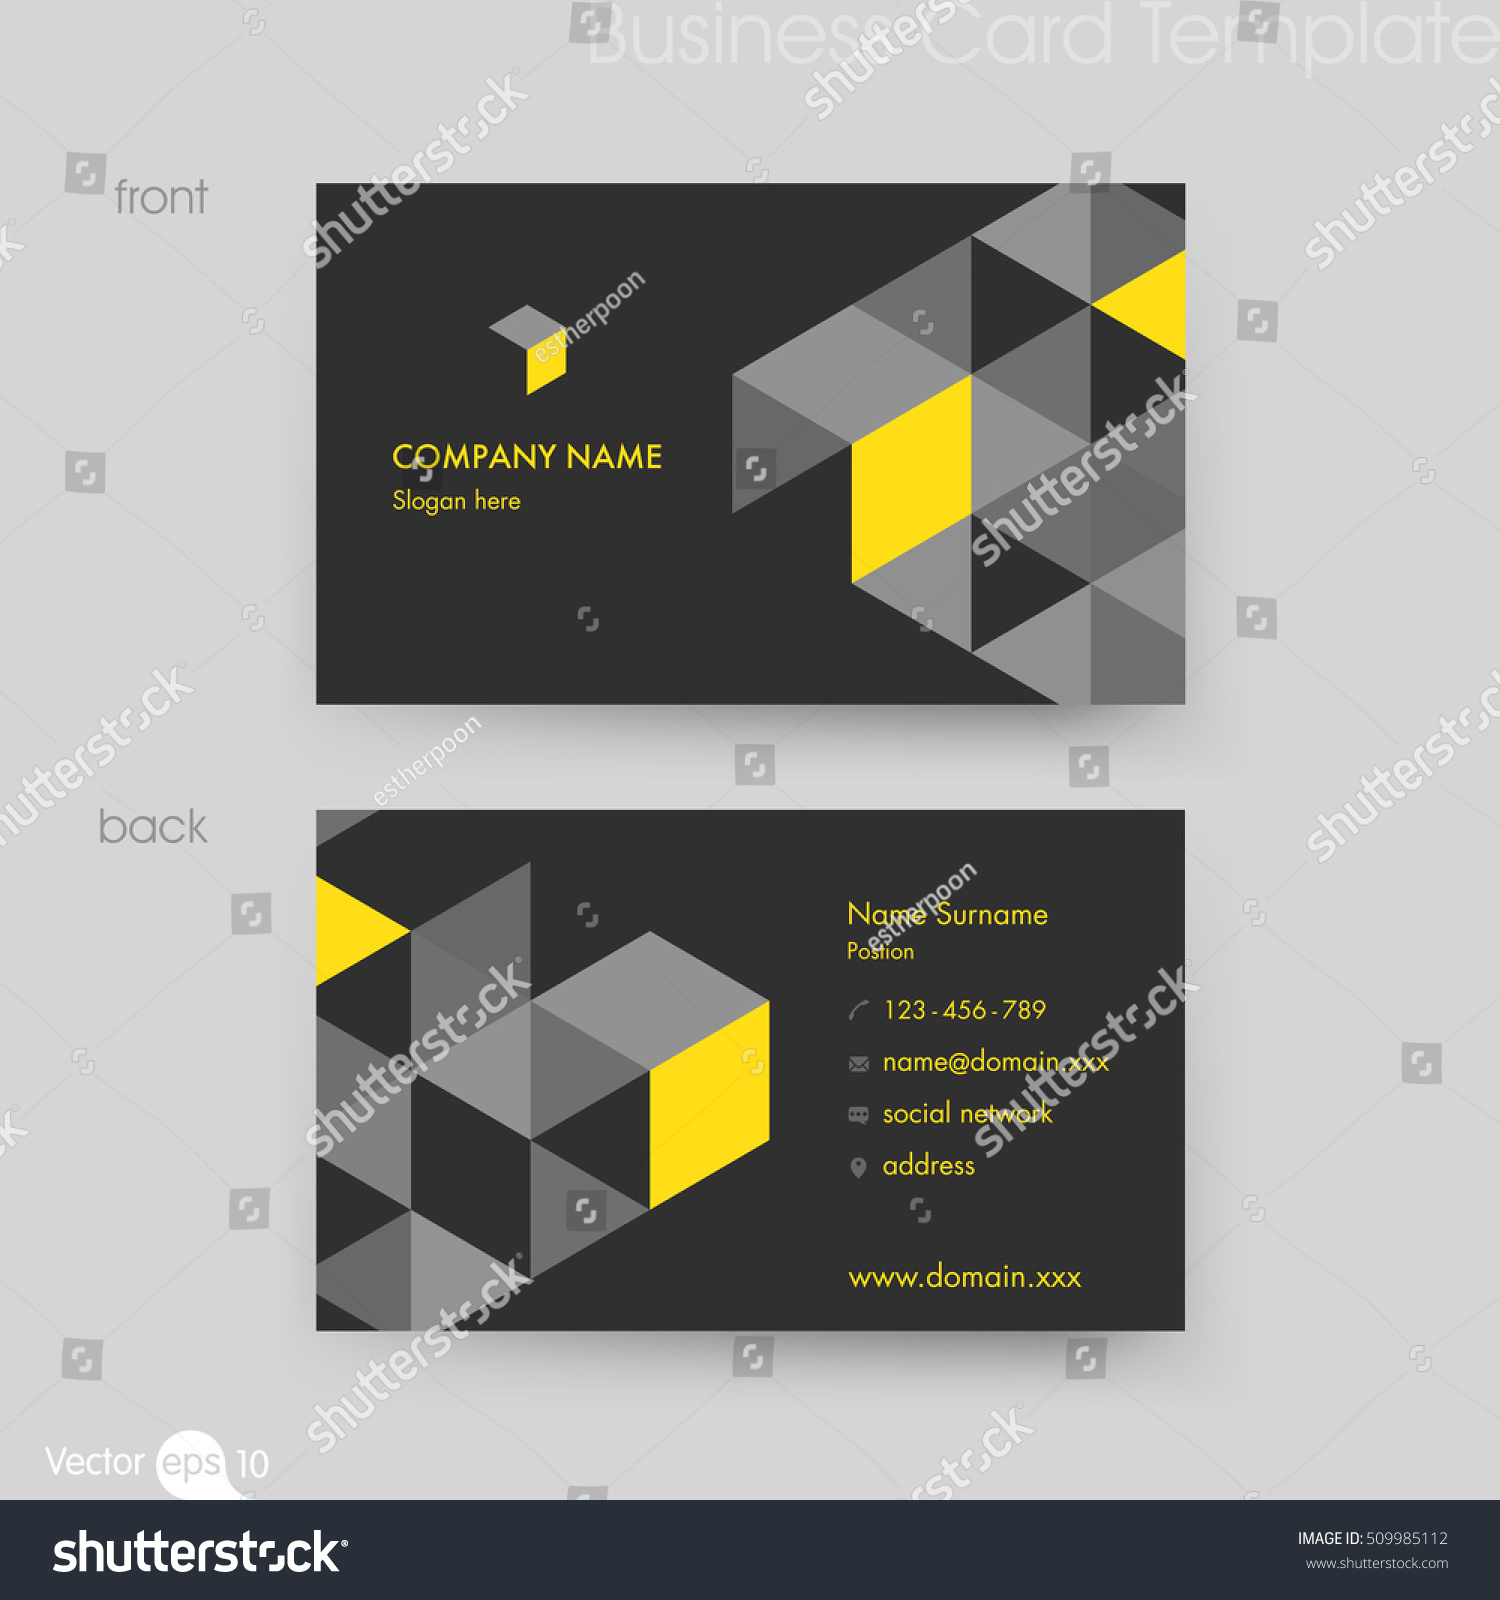 business card template stock vector shutterstock